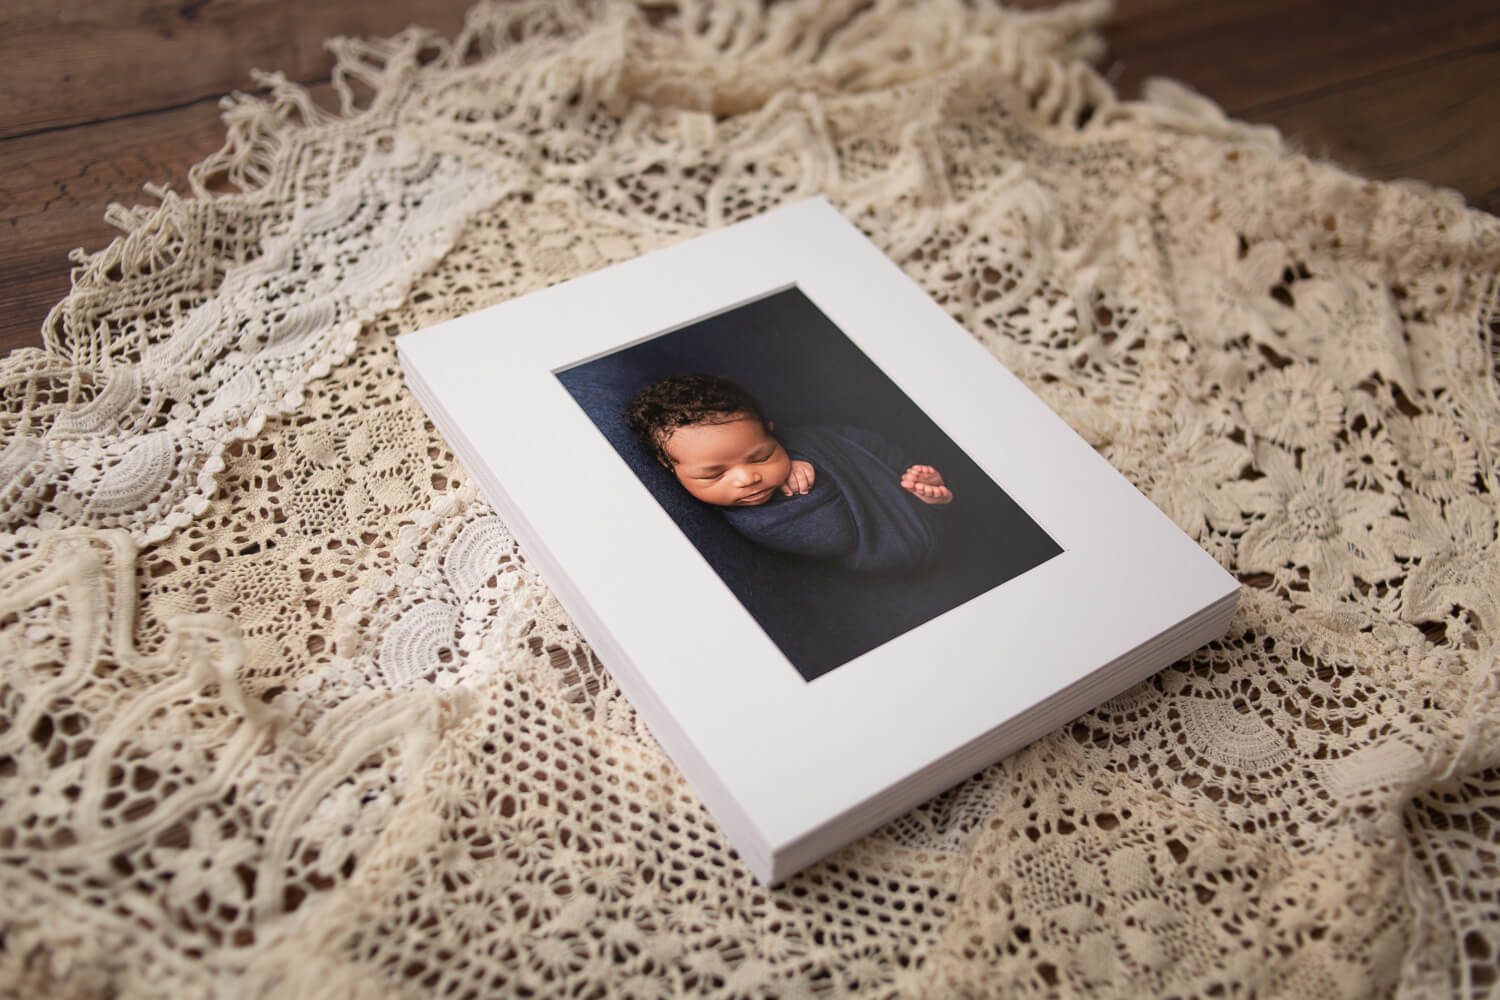 photo prints and albums